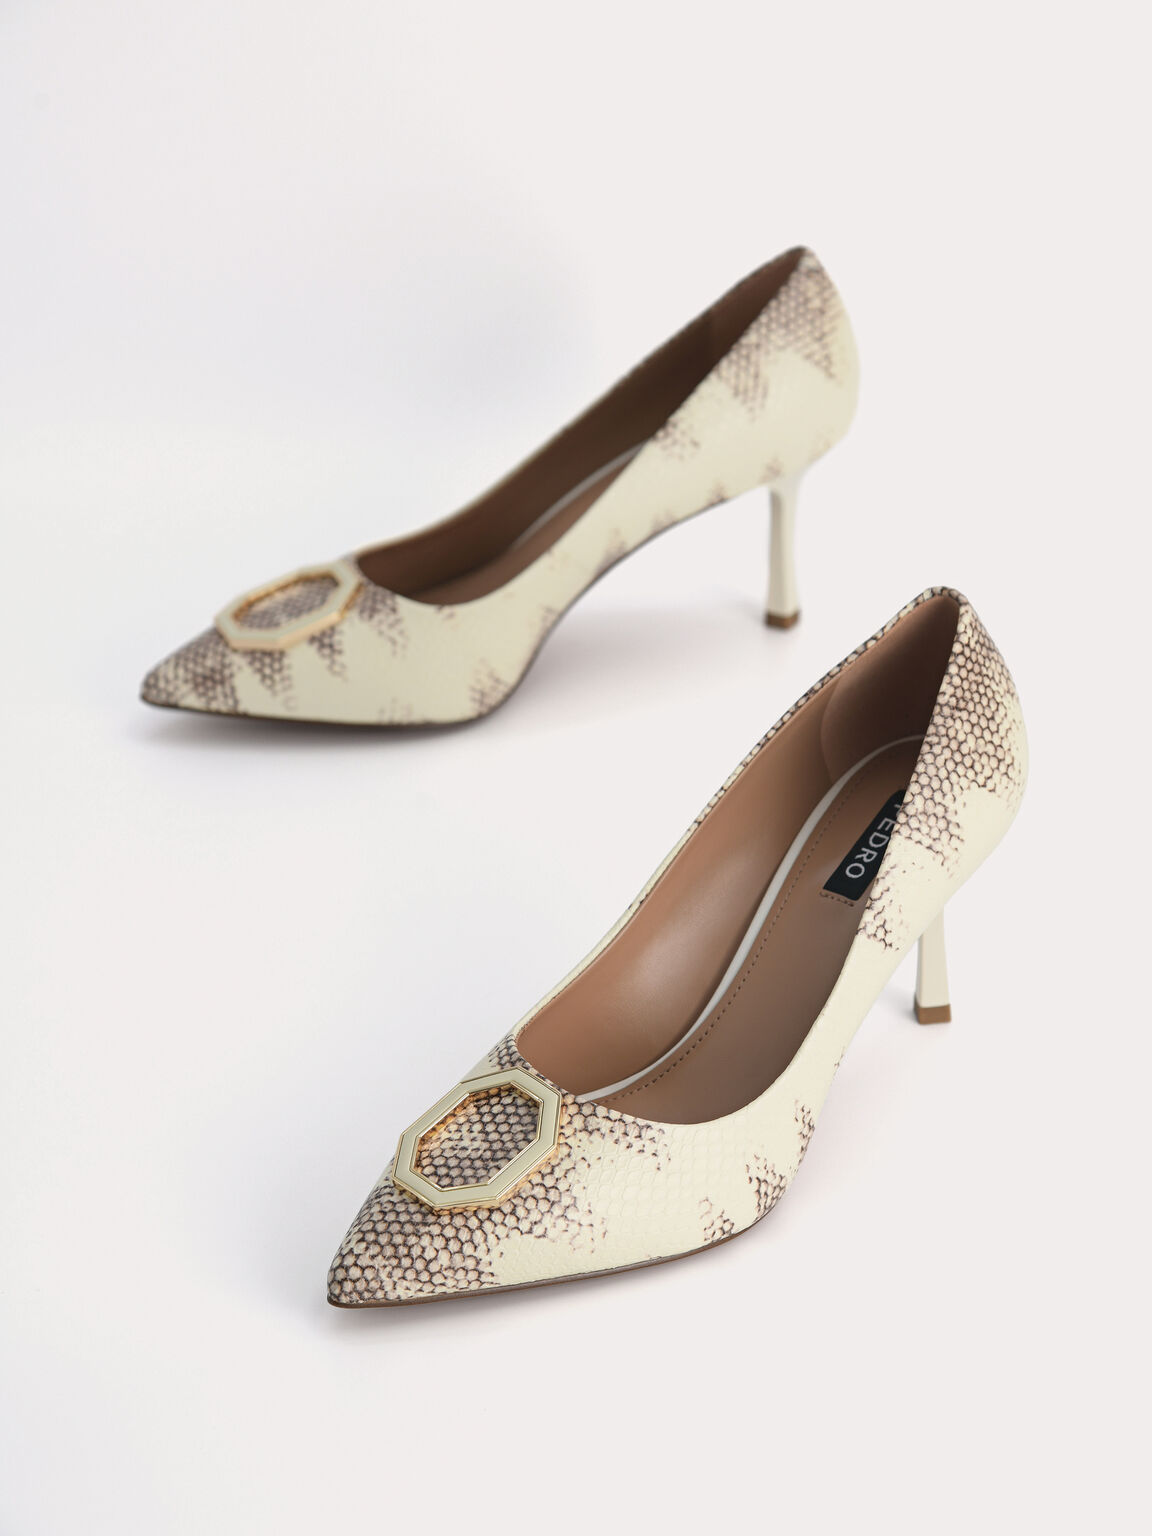 Printed Leather Pointed Toe Pumps, Multi, hi-res